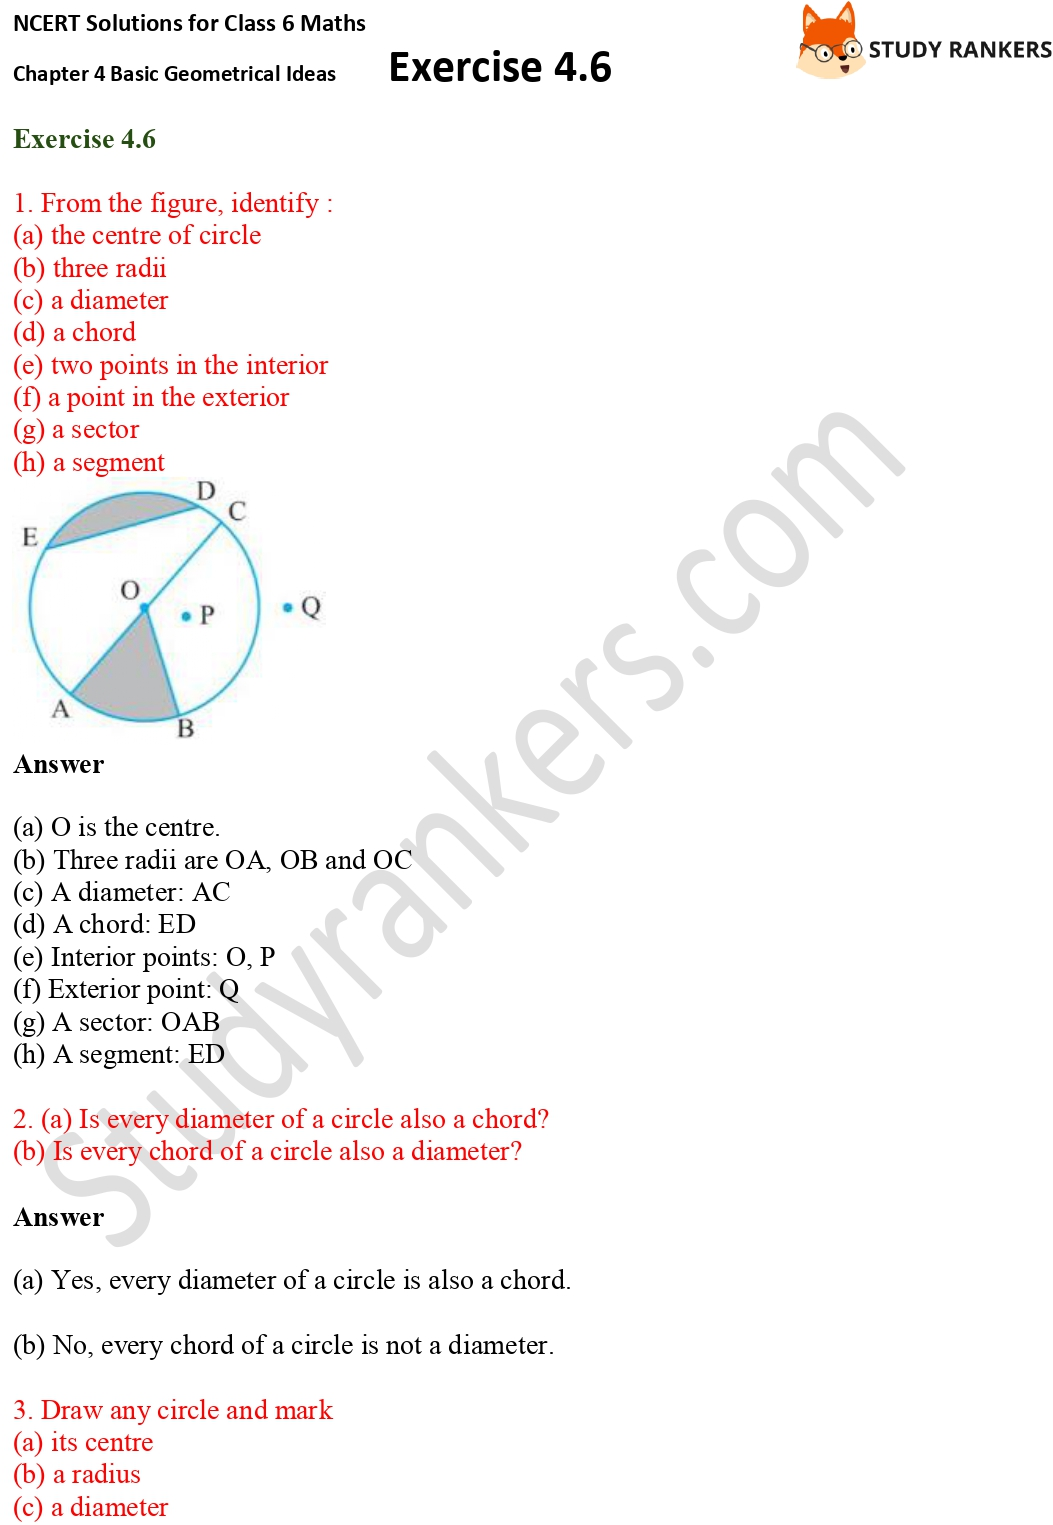 NCERT Solutions for Class 6 Maths Chapter 4 Basic Geometrical Ideas Exercise 4.6 Part 1